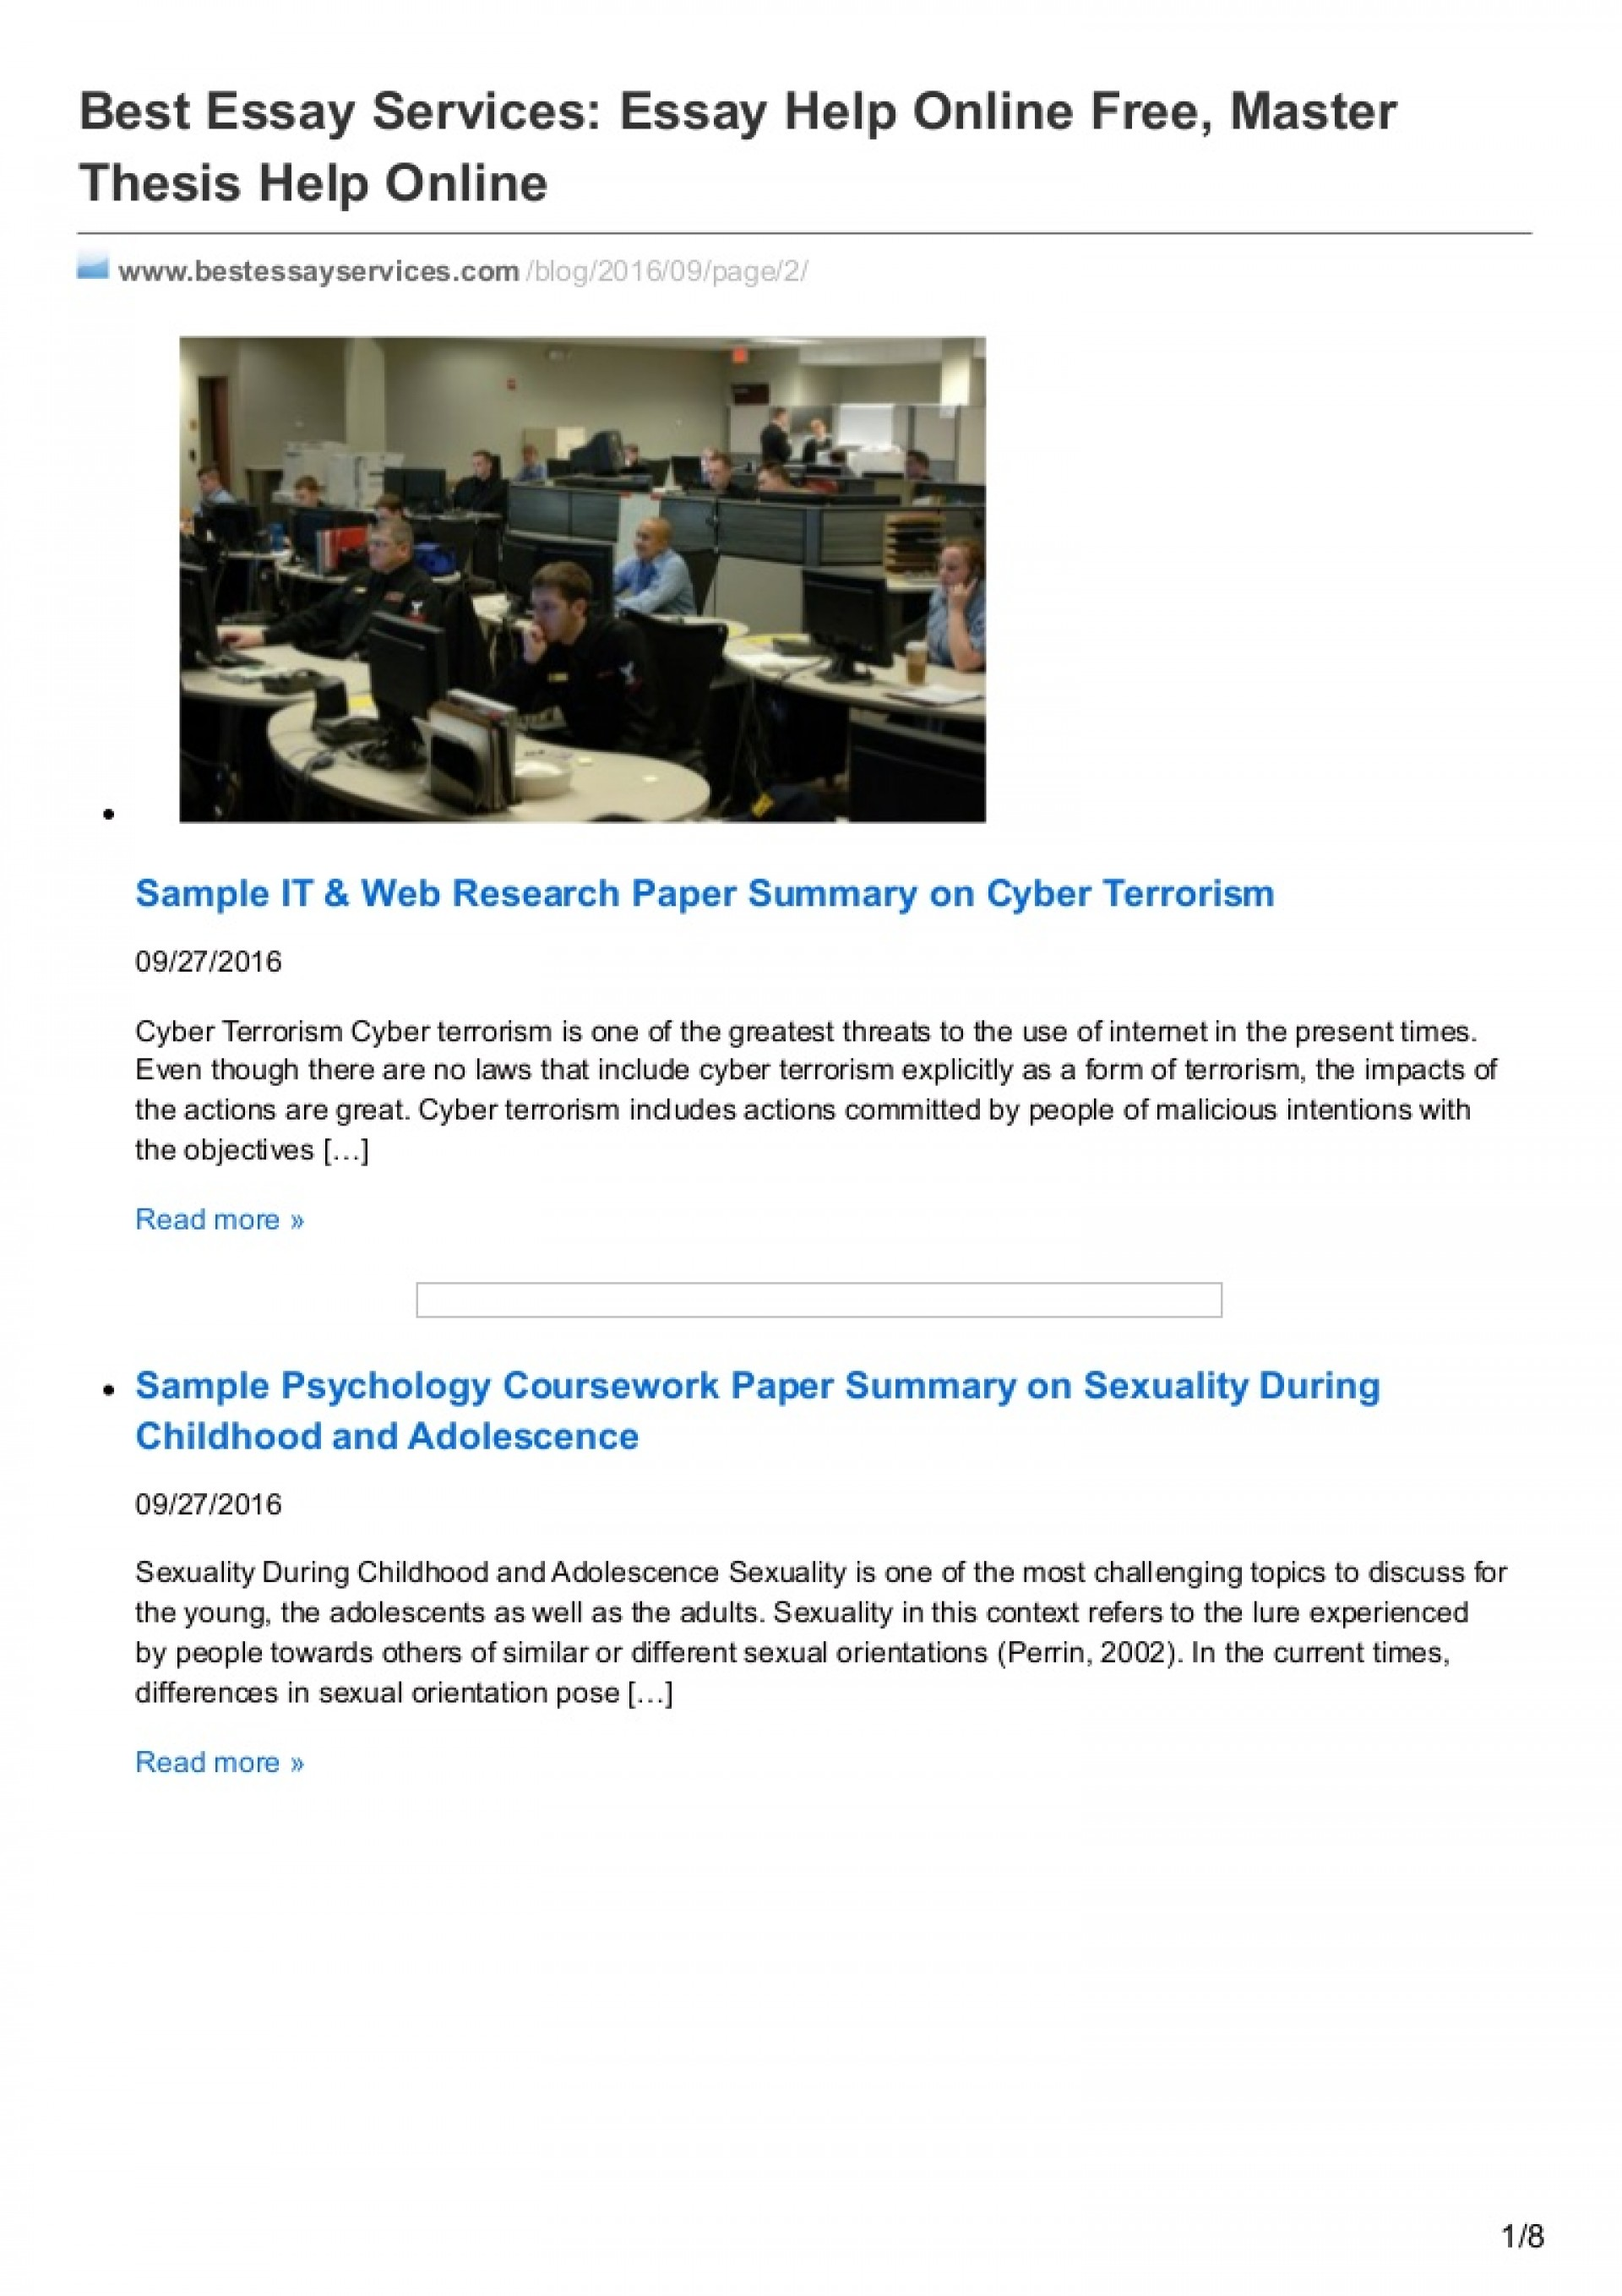 019 Bestessayservices Thumbnail Research Paper Cyber Terrorism Imposing Essay 1920